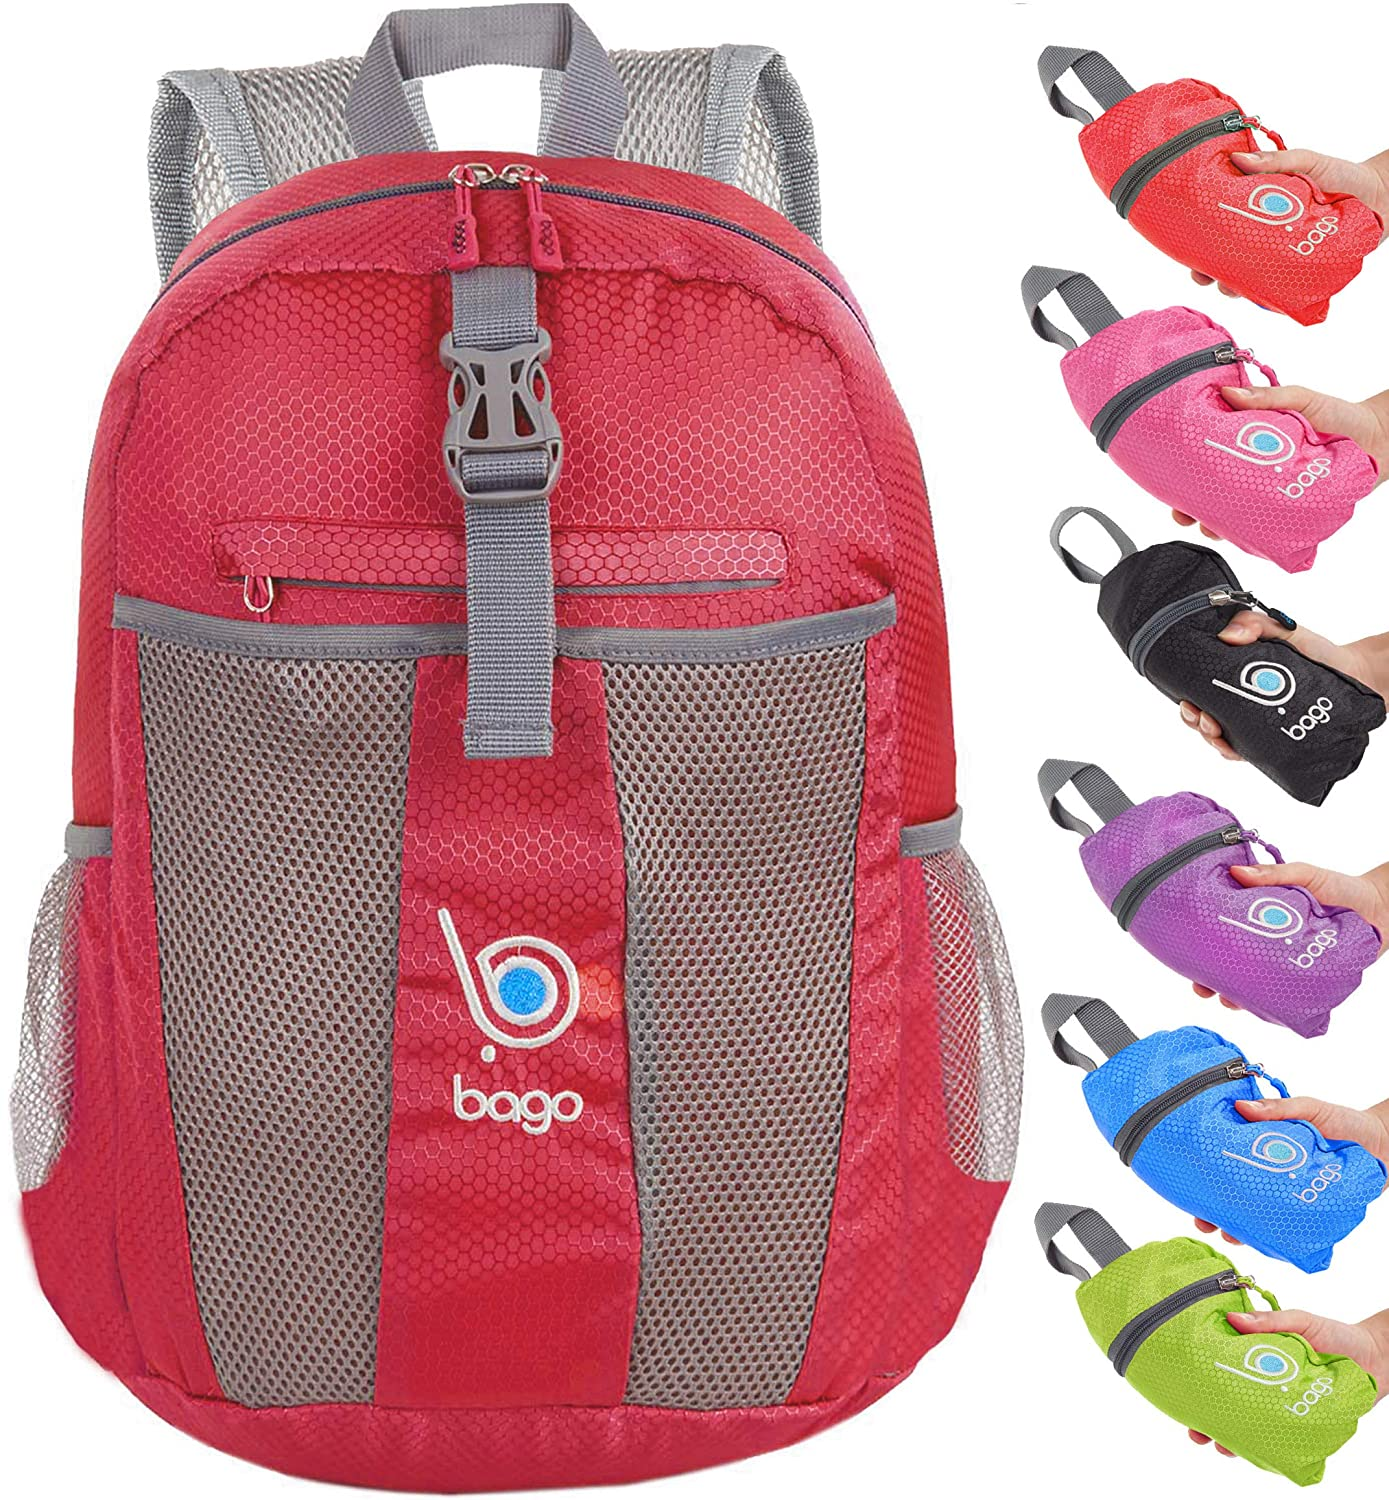 Bago Lightweight Foldable Backpack for Travel and Sport - 25L Collapsible Daybag BacPk-25-Black